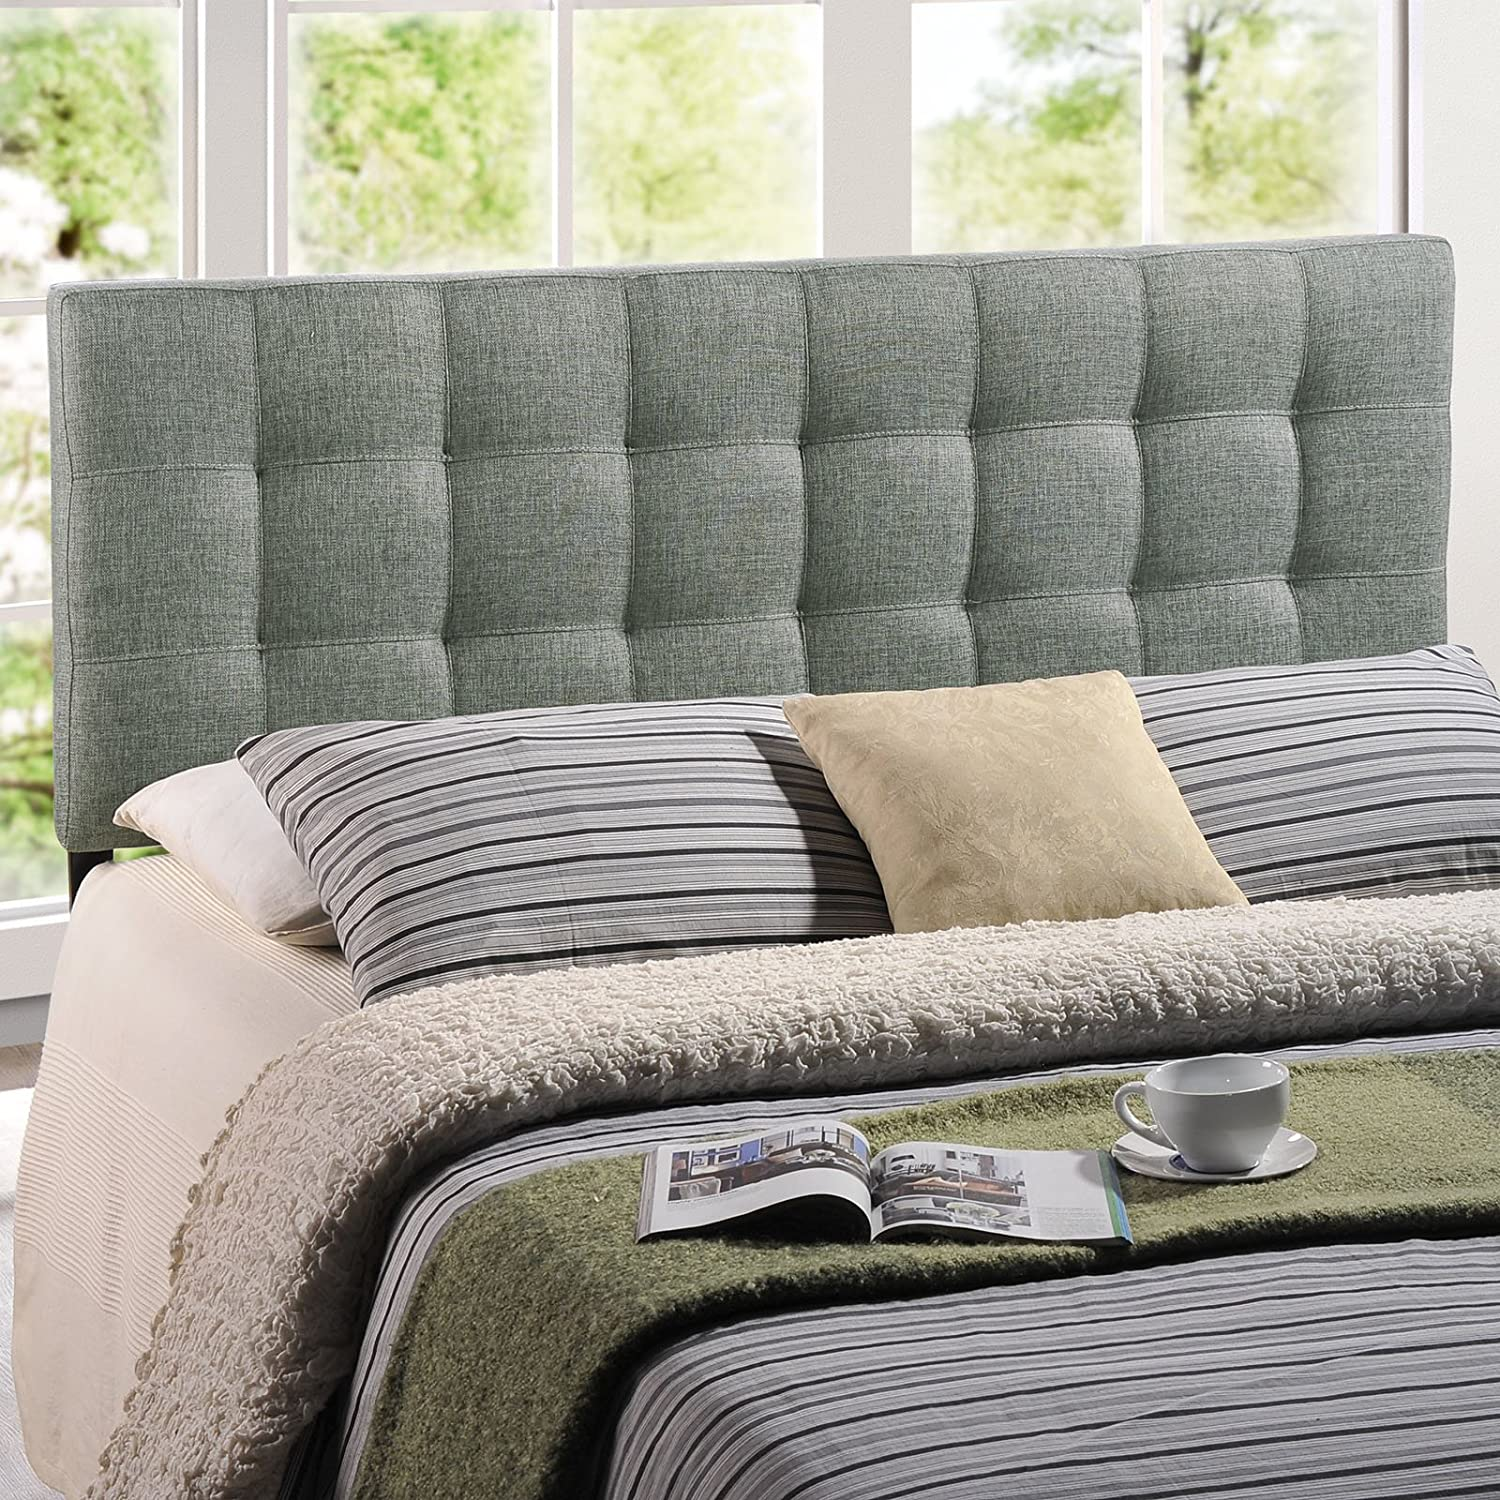 upholstered fabric also com interalle headboard headboards cheap